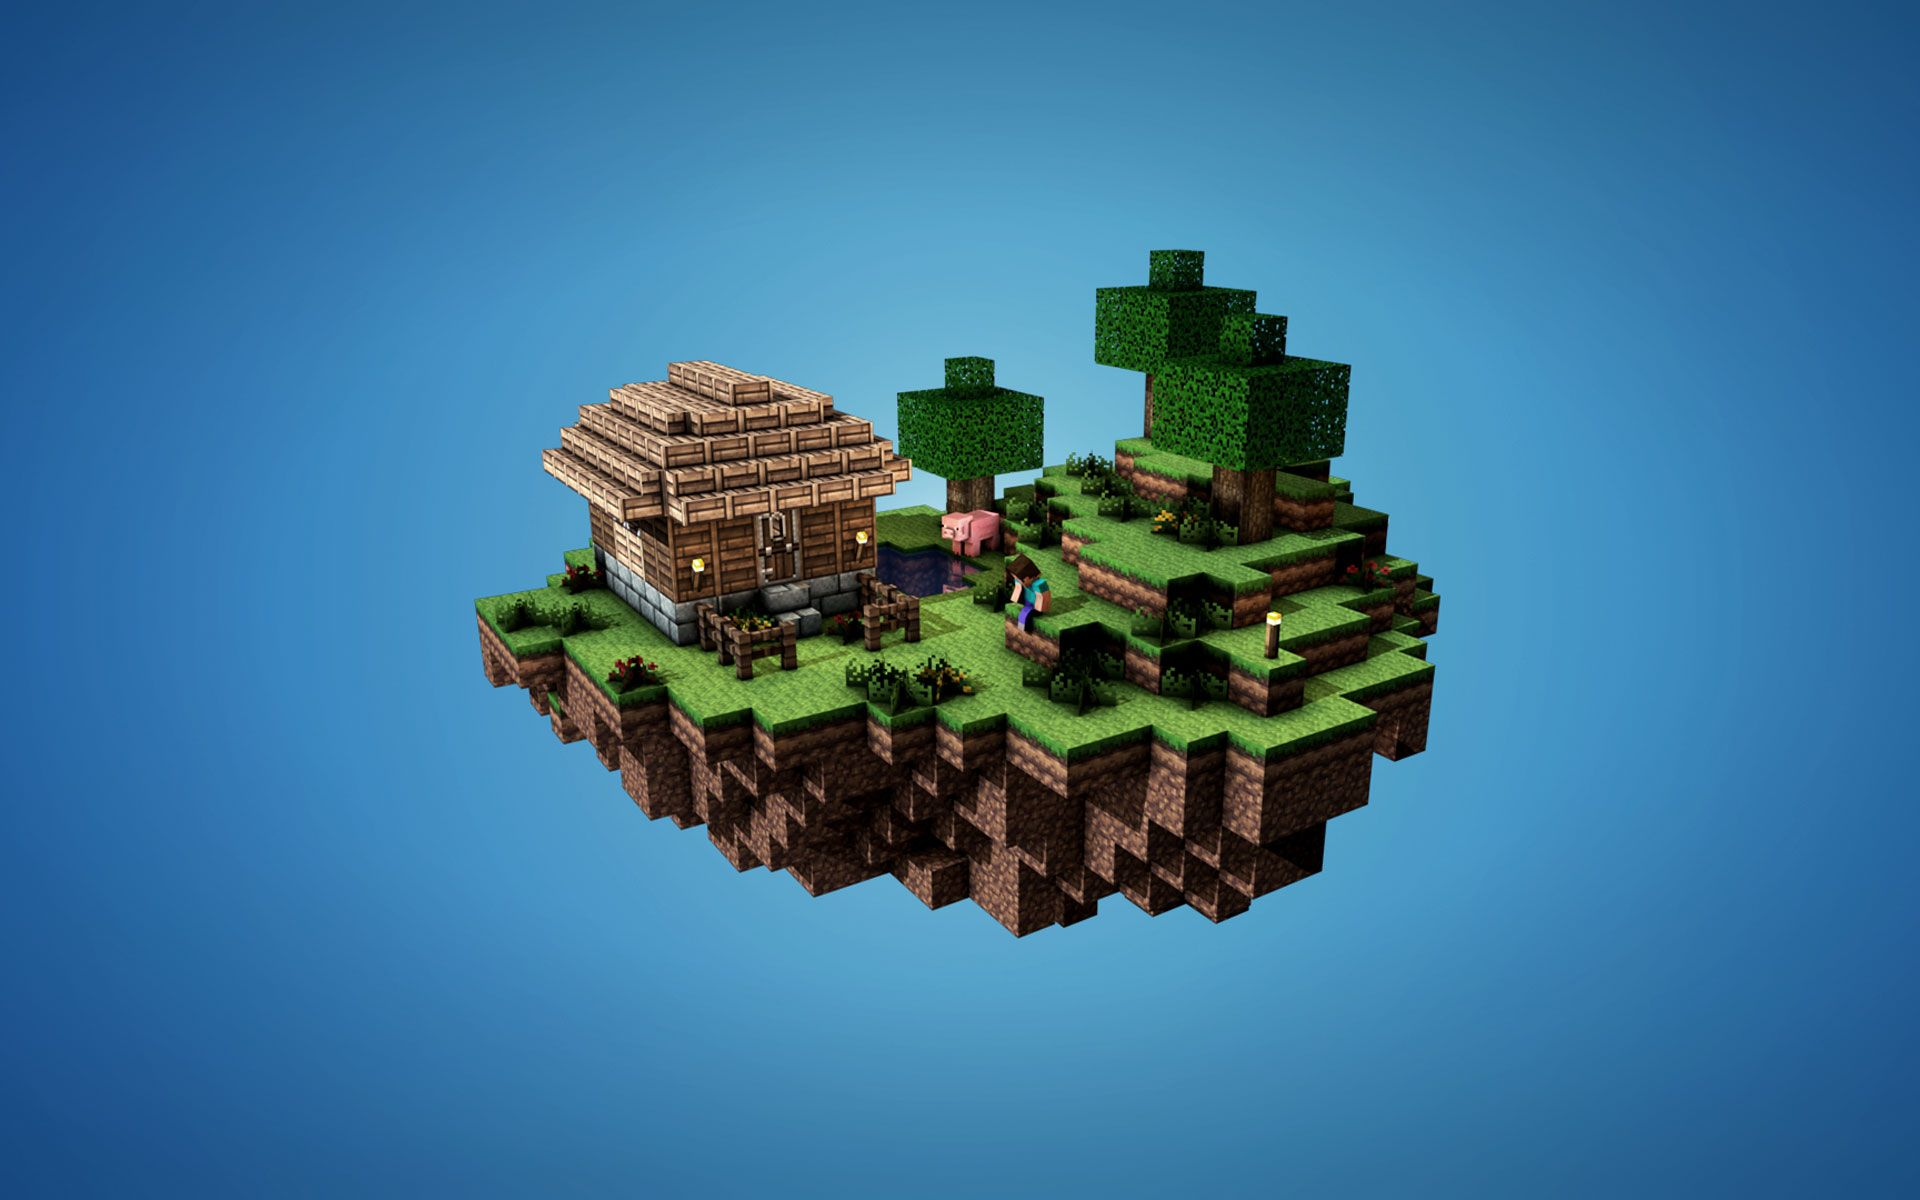 minecraft wallpapers creator group 1600a—900 minecraft free wallpapers 50 wallpapers adorable